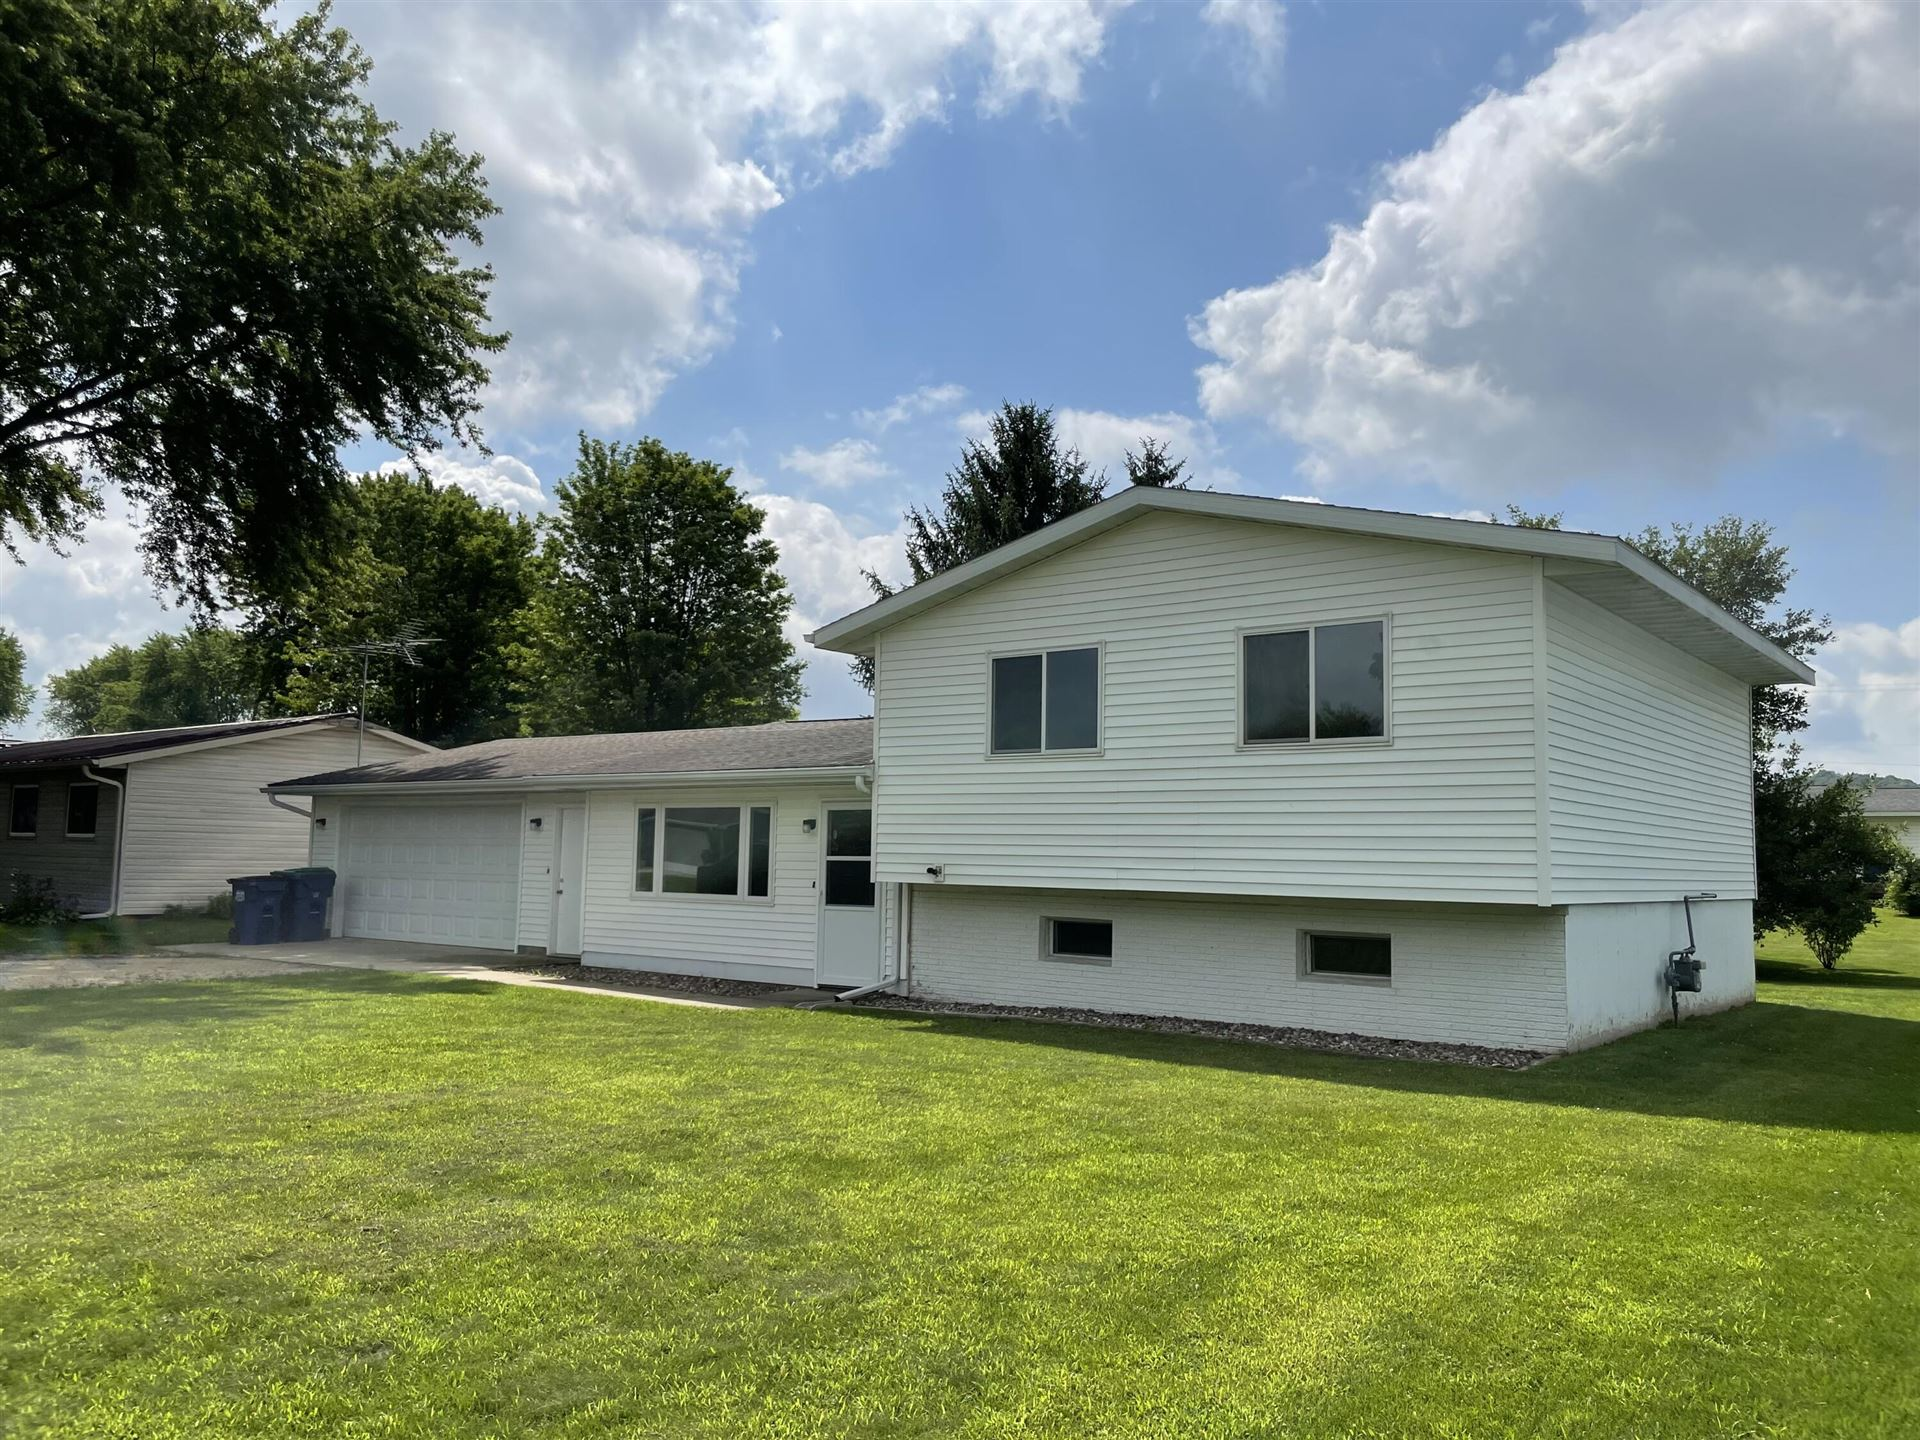 403 Mourning Dove St, Rockland, WI 54653 - MLS#: 1754596